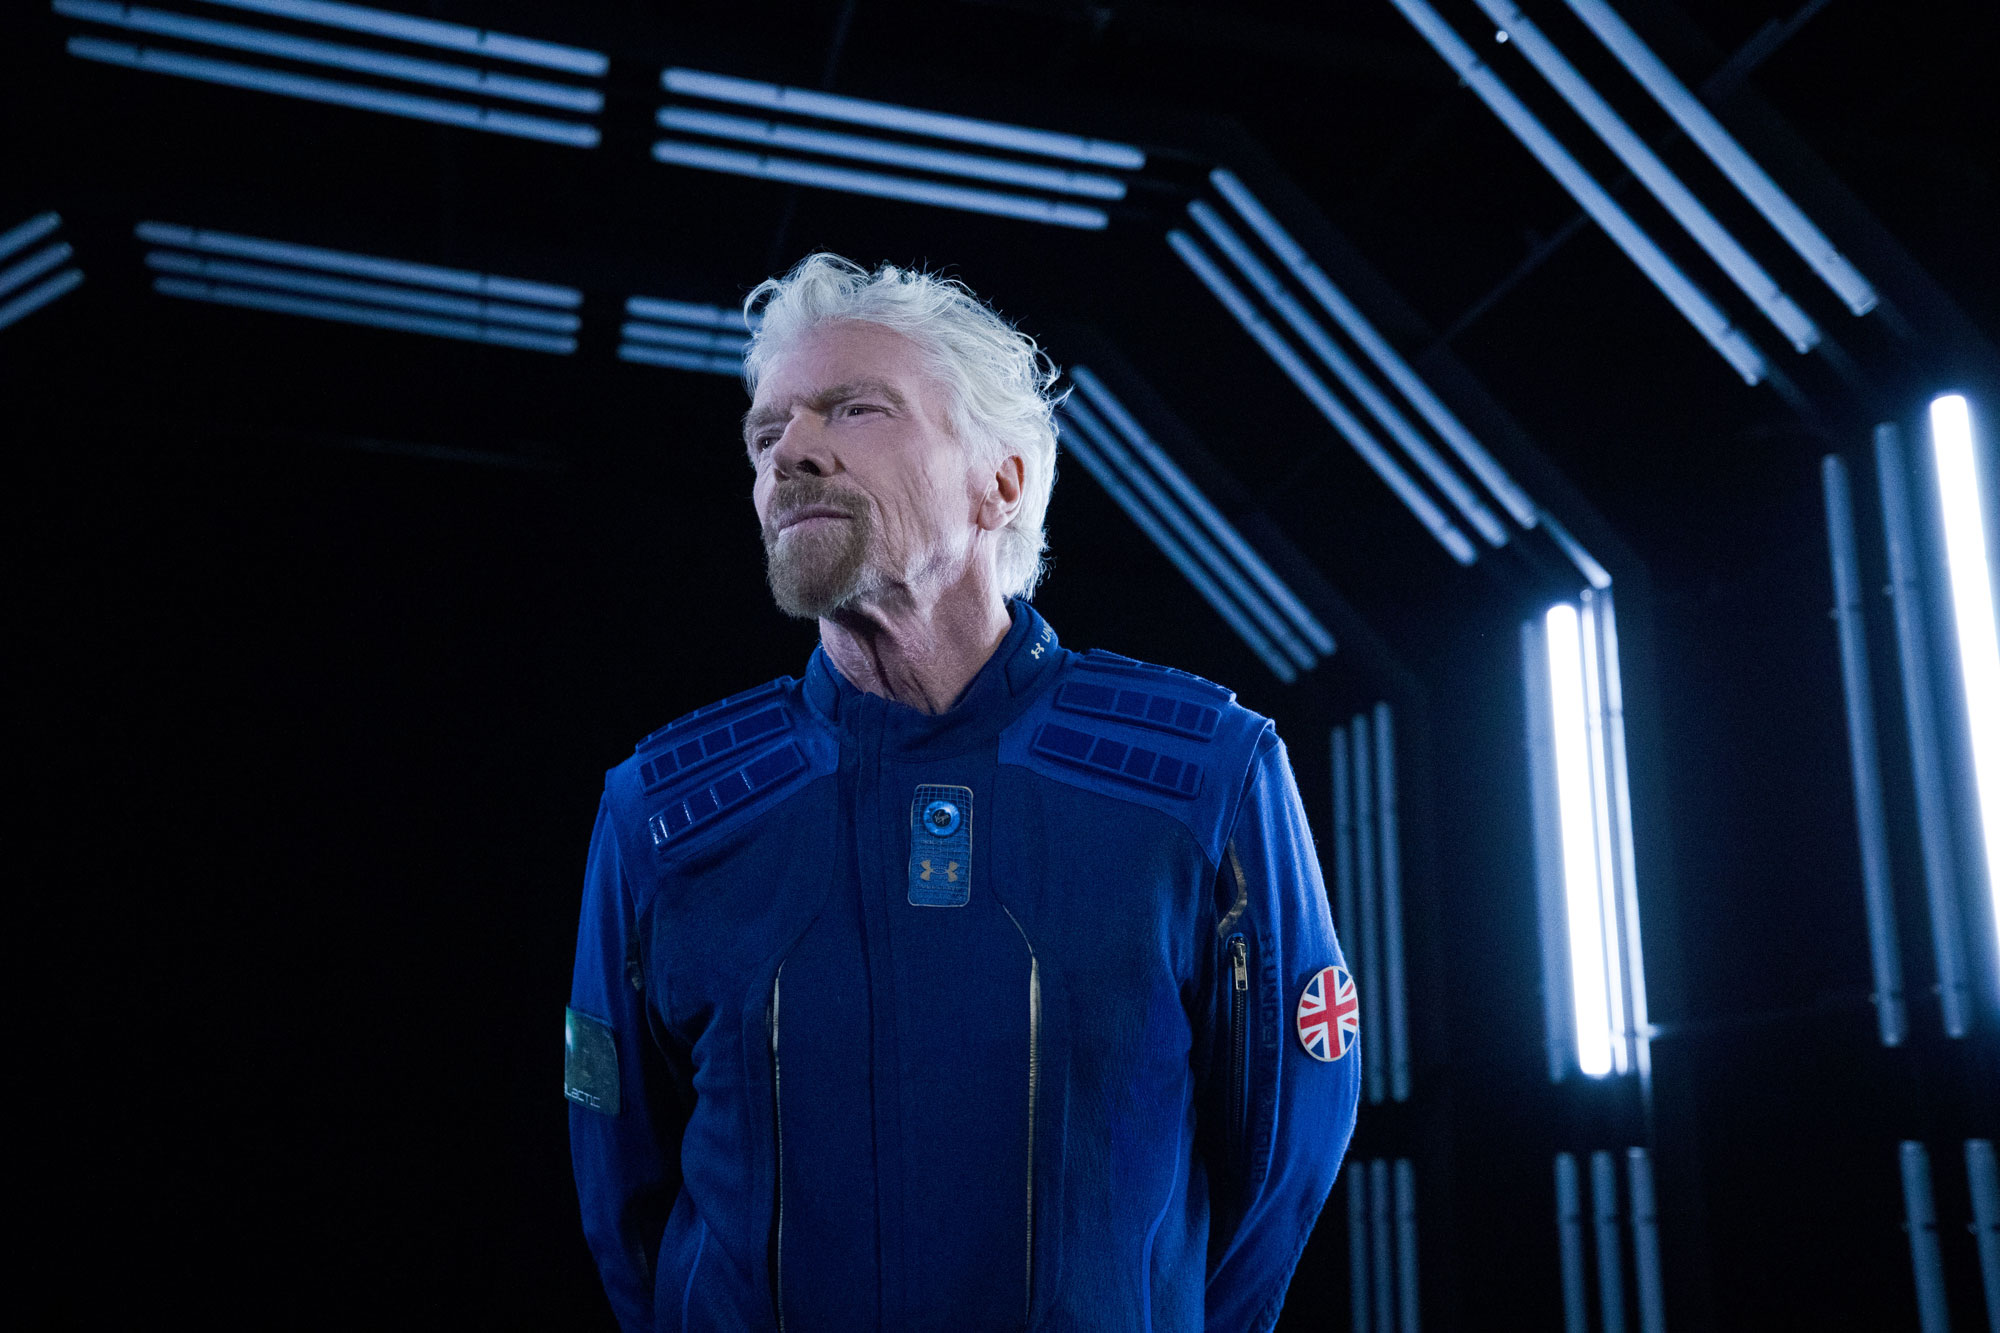 Under Armour and Virgin Galactic unveil spacesuits